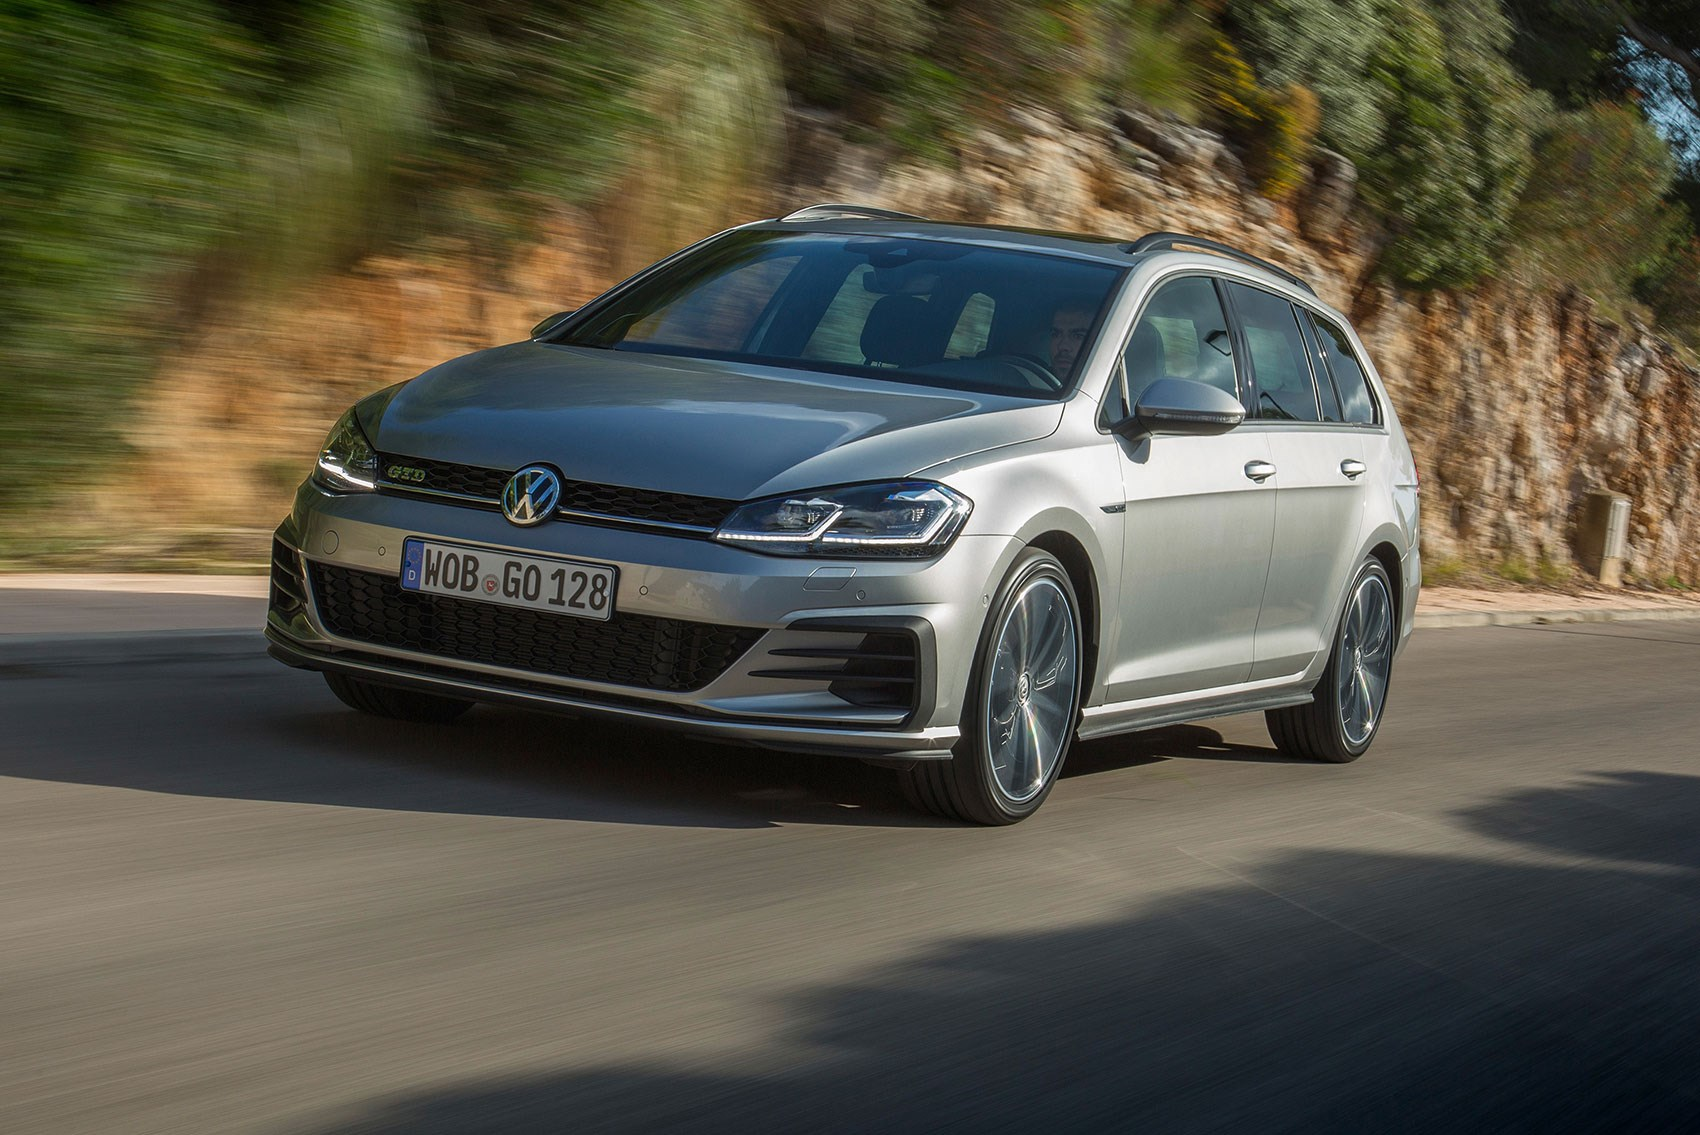 Vw Golf Gtd Estate 2017 Review Car Magazine